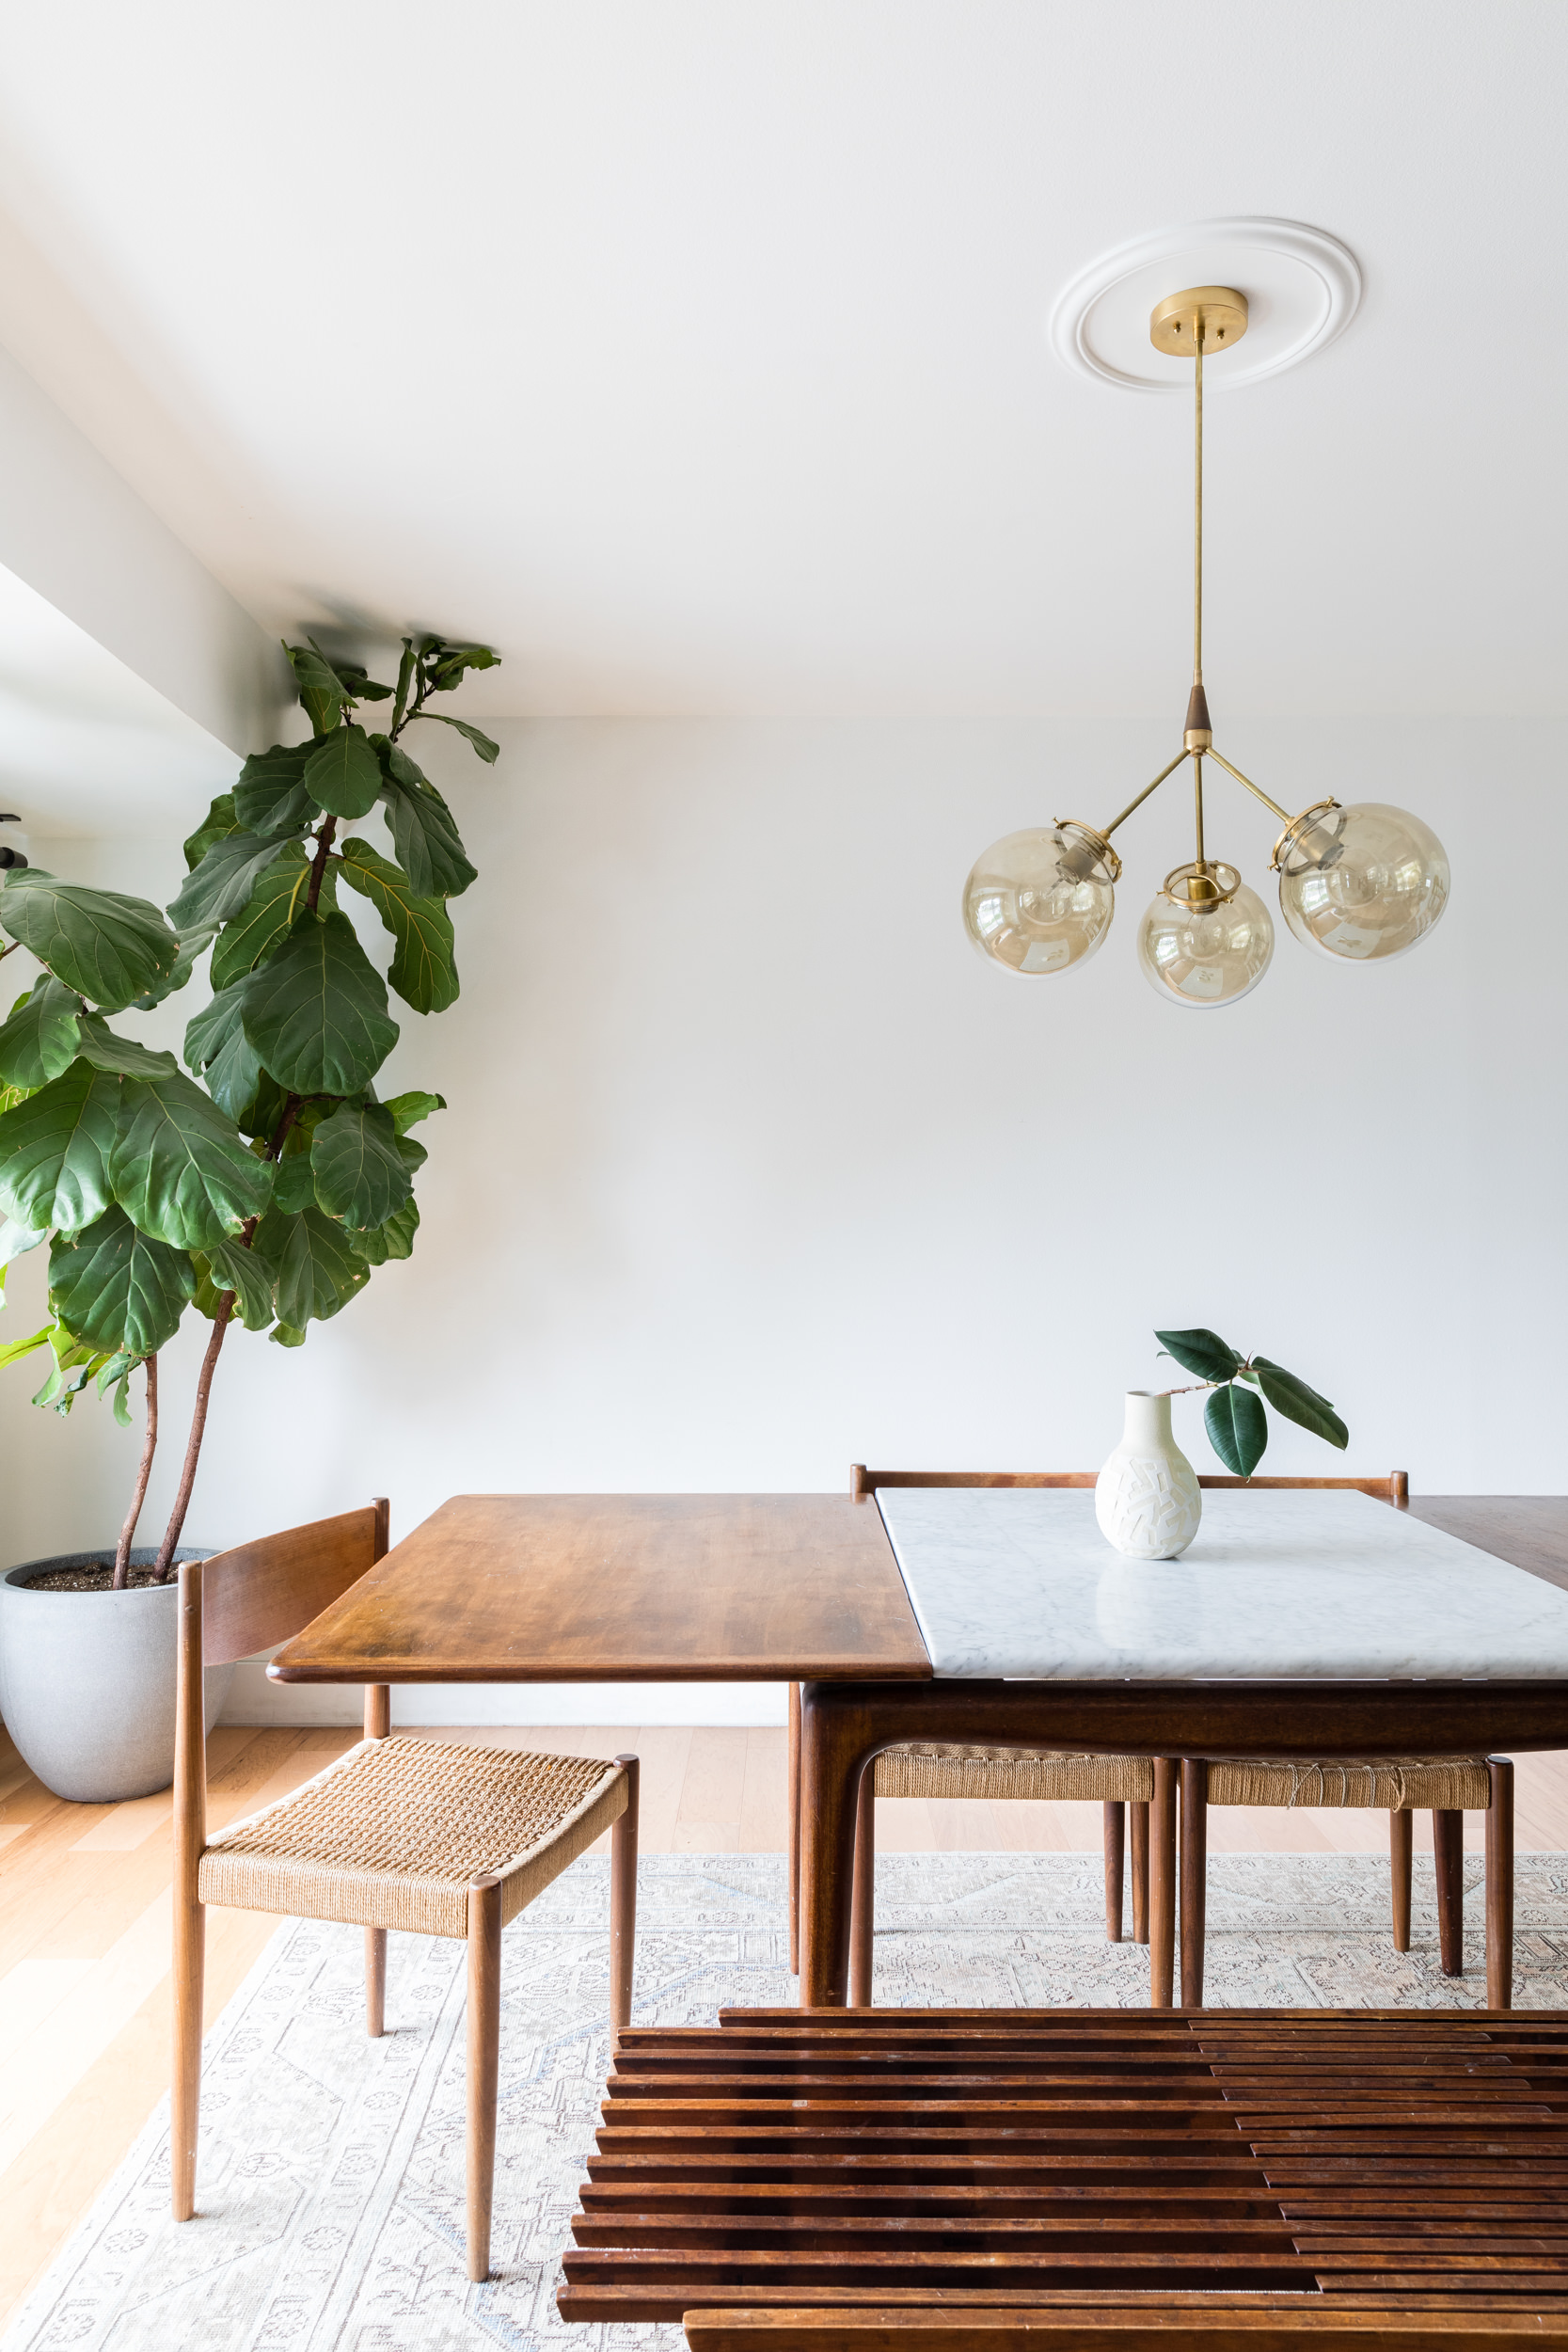 Mid mod dining room with teak table and chairs and fiddle leaf fig tree.